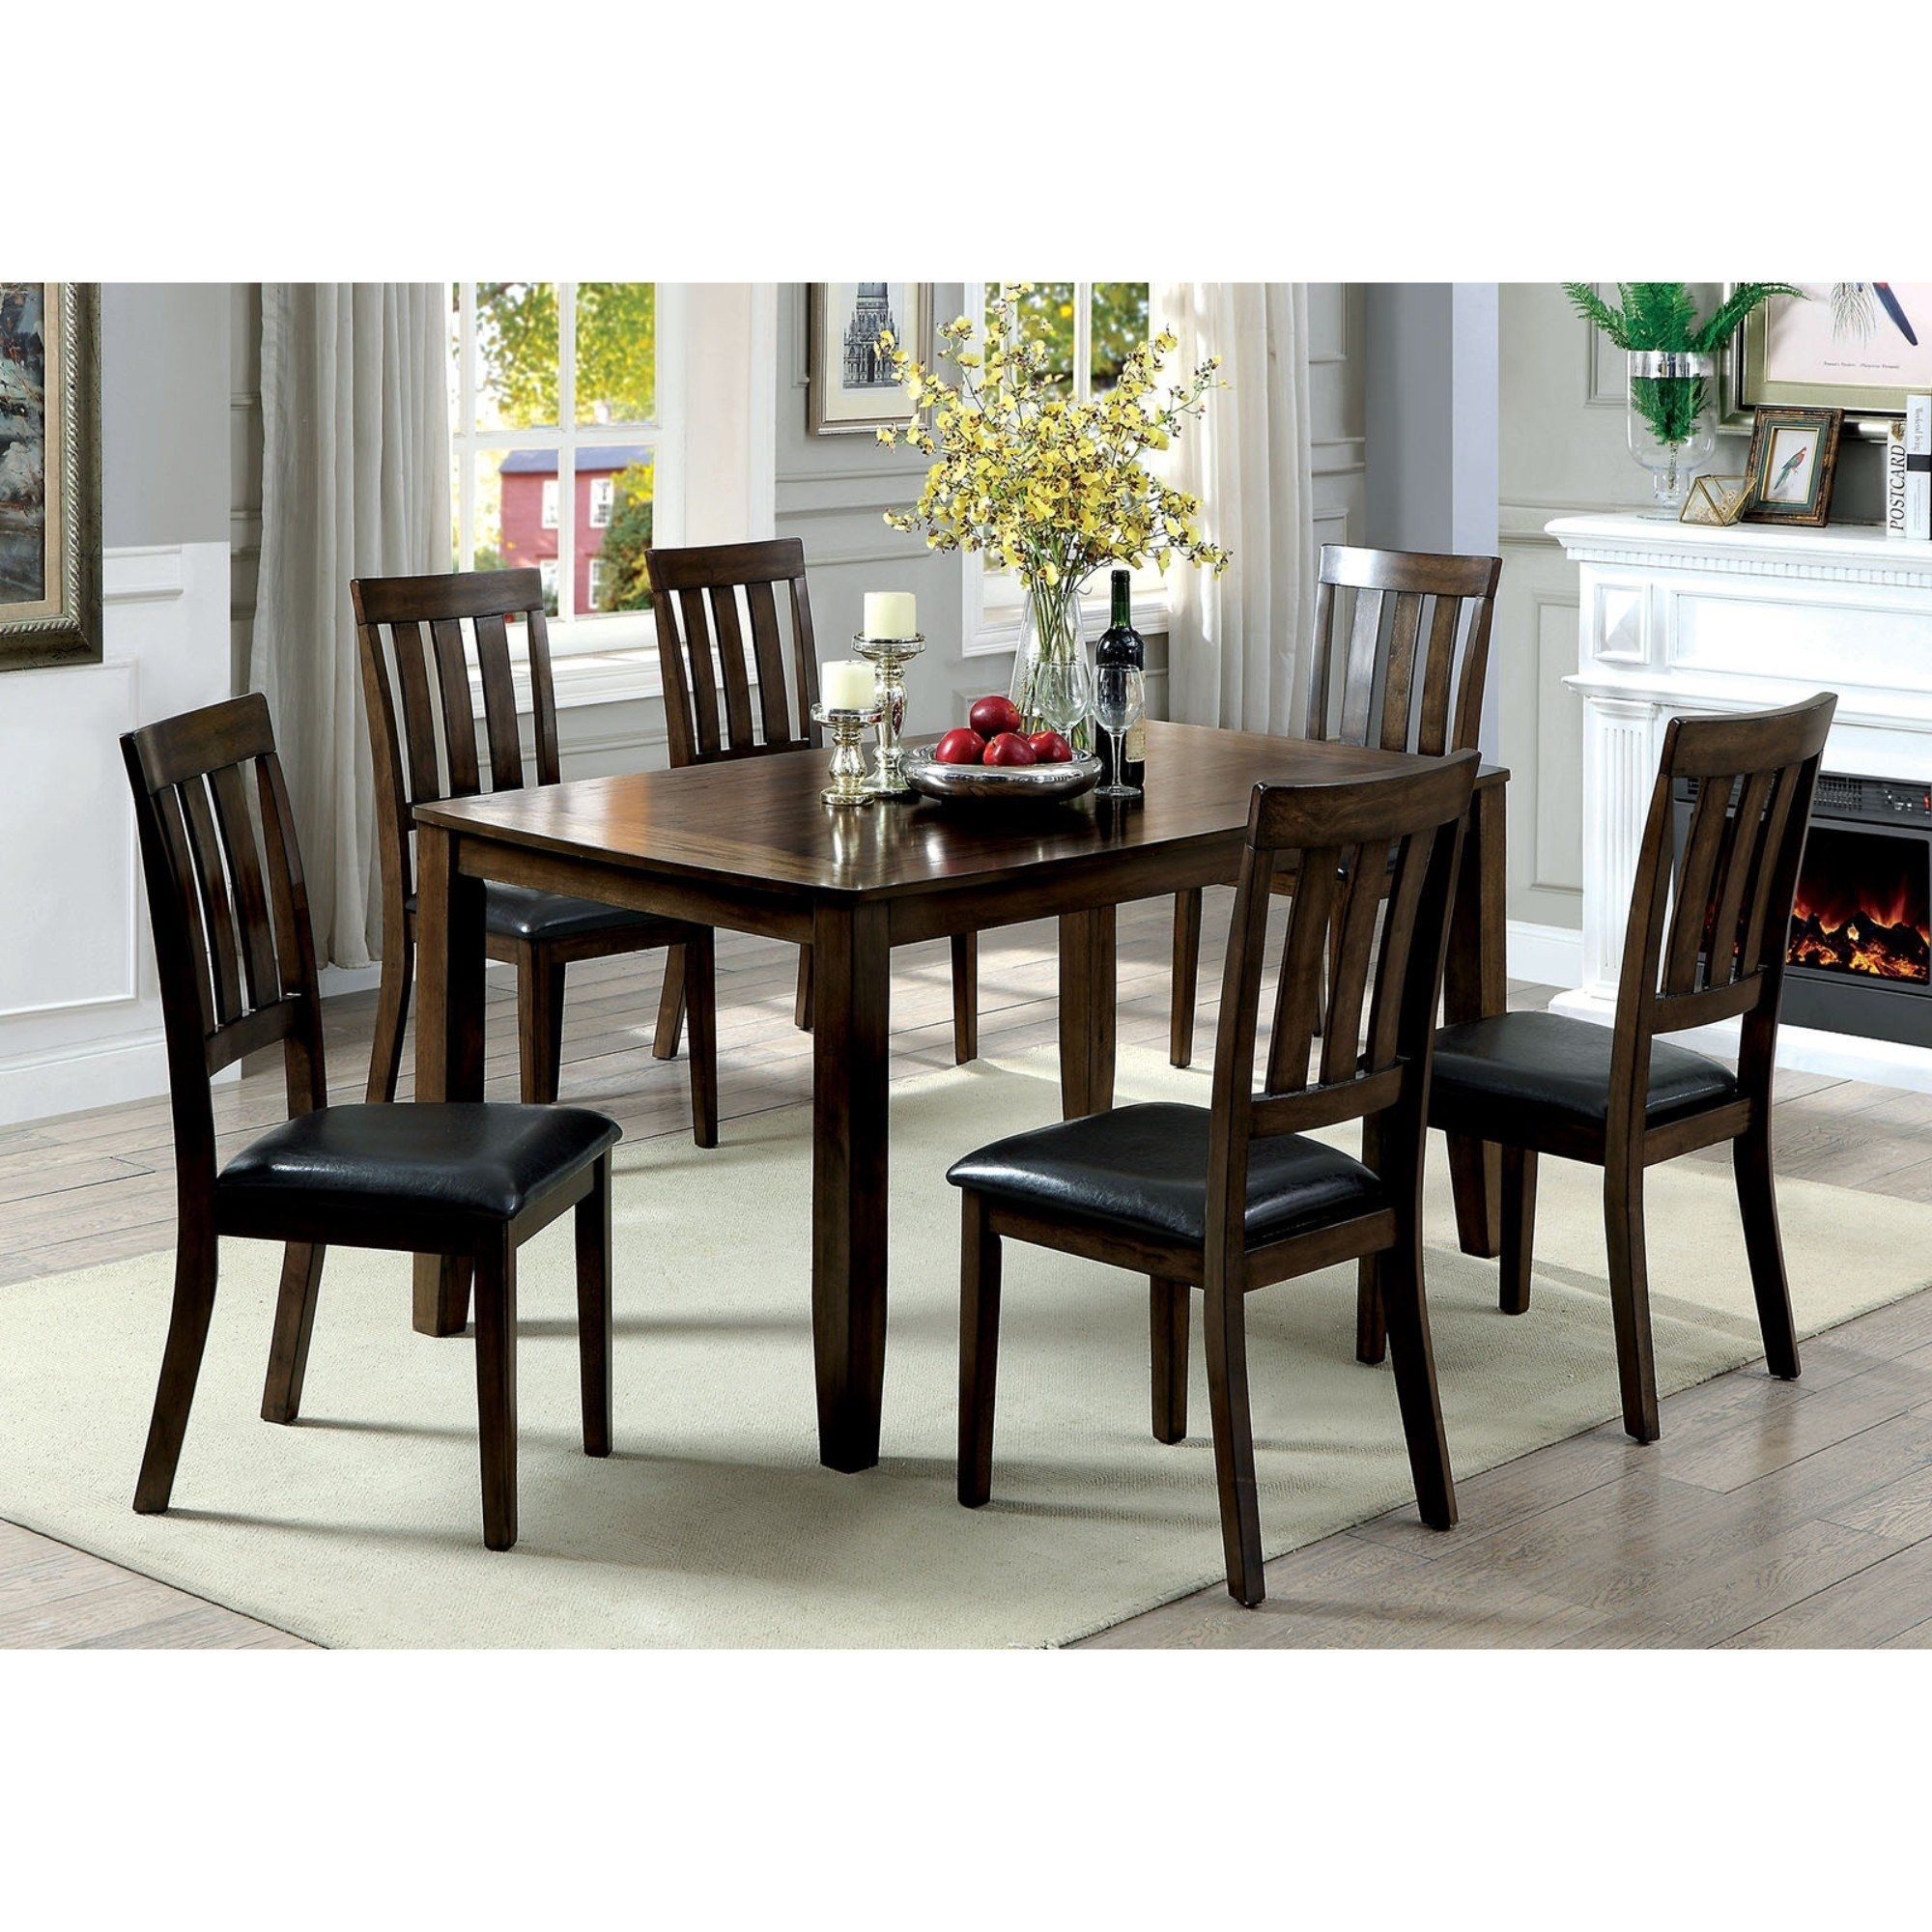 Millwood Pines Devon Wooden 7 Piece Counter Height Dining Table Set With Regard To Current Candice Ii 7 Piece Extension Rectangular Dining Sets With Slat Back Side Chairs (View 5 of 20)